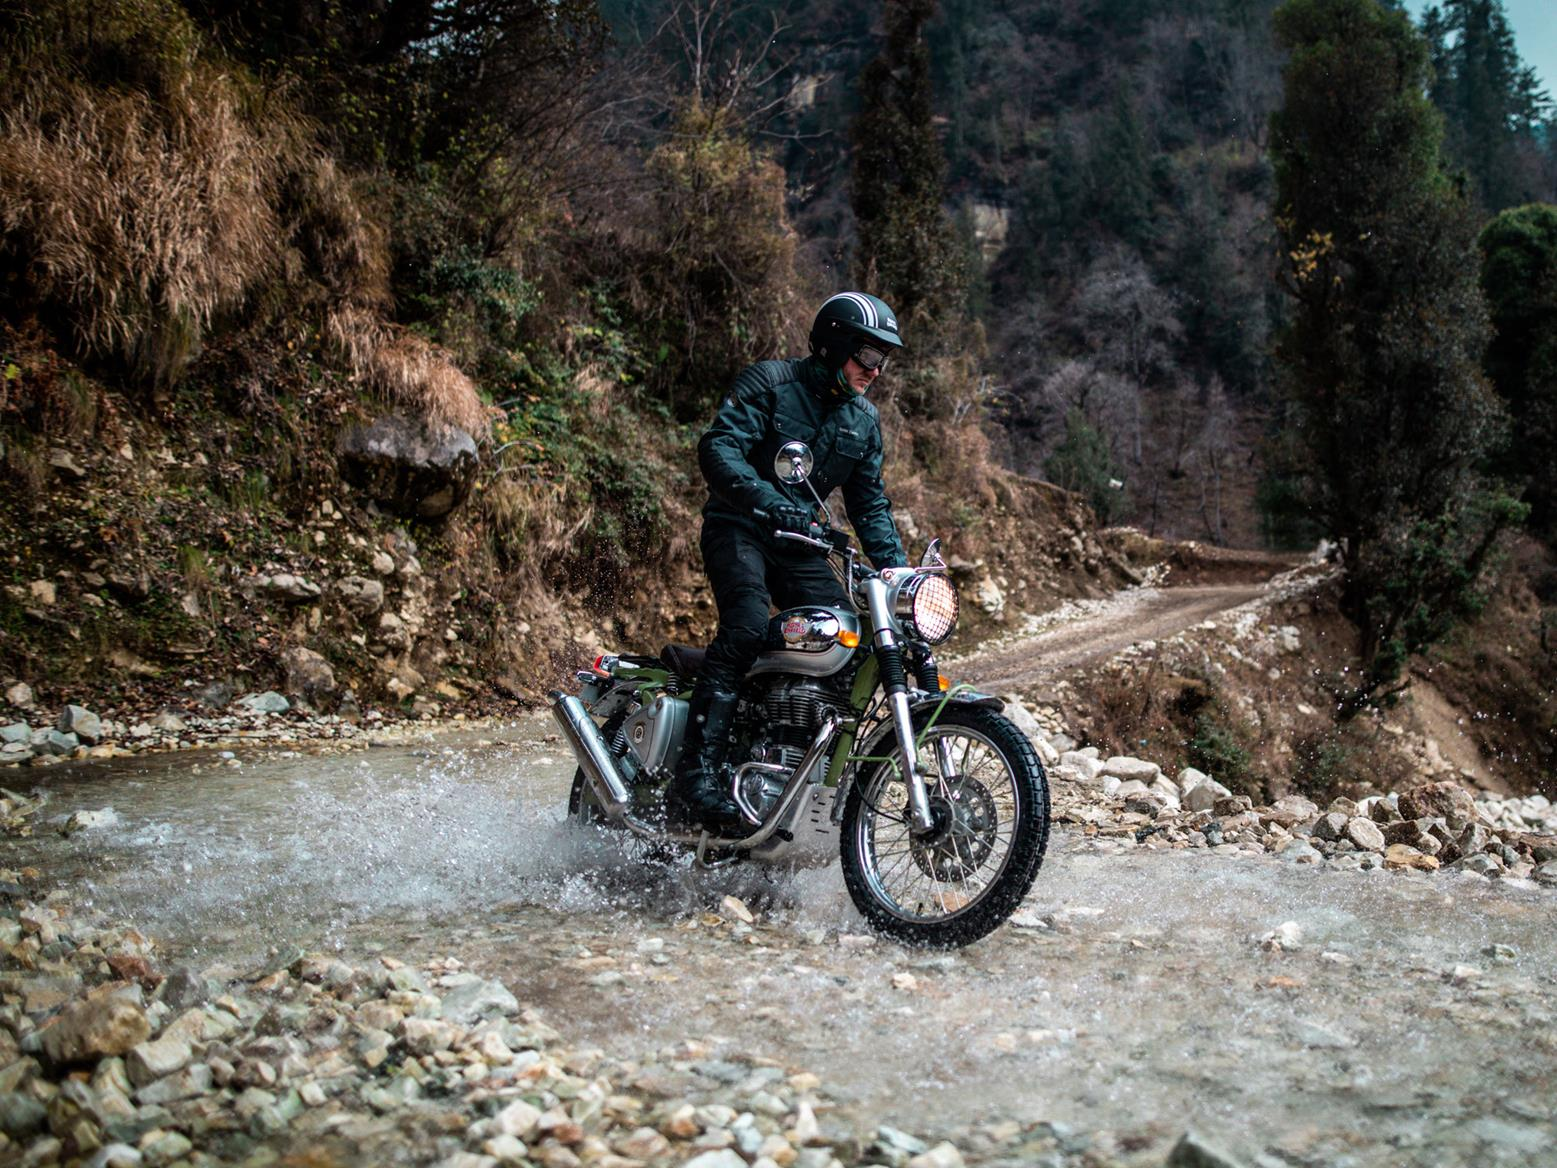 Off-road Royal Enfield Bullet Trials Works Replica